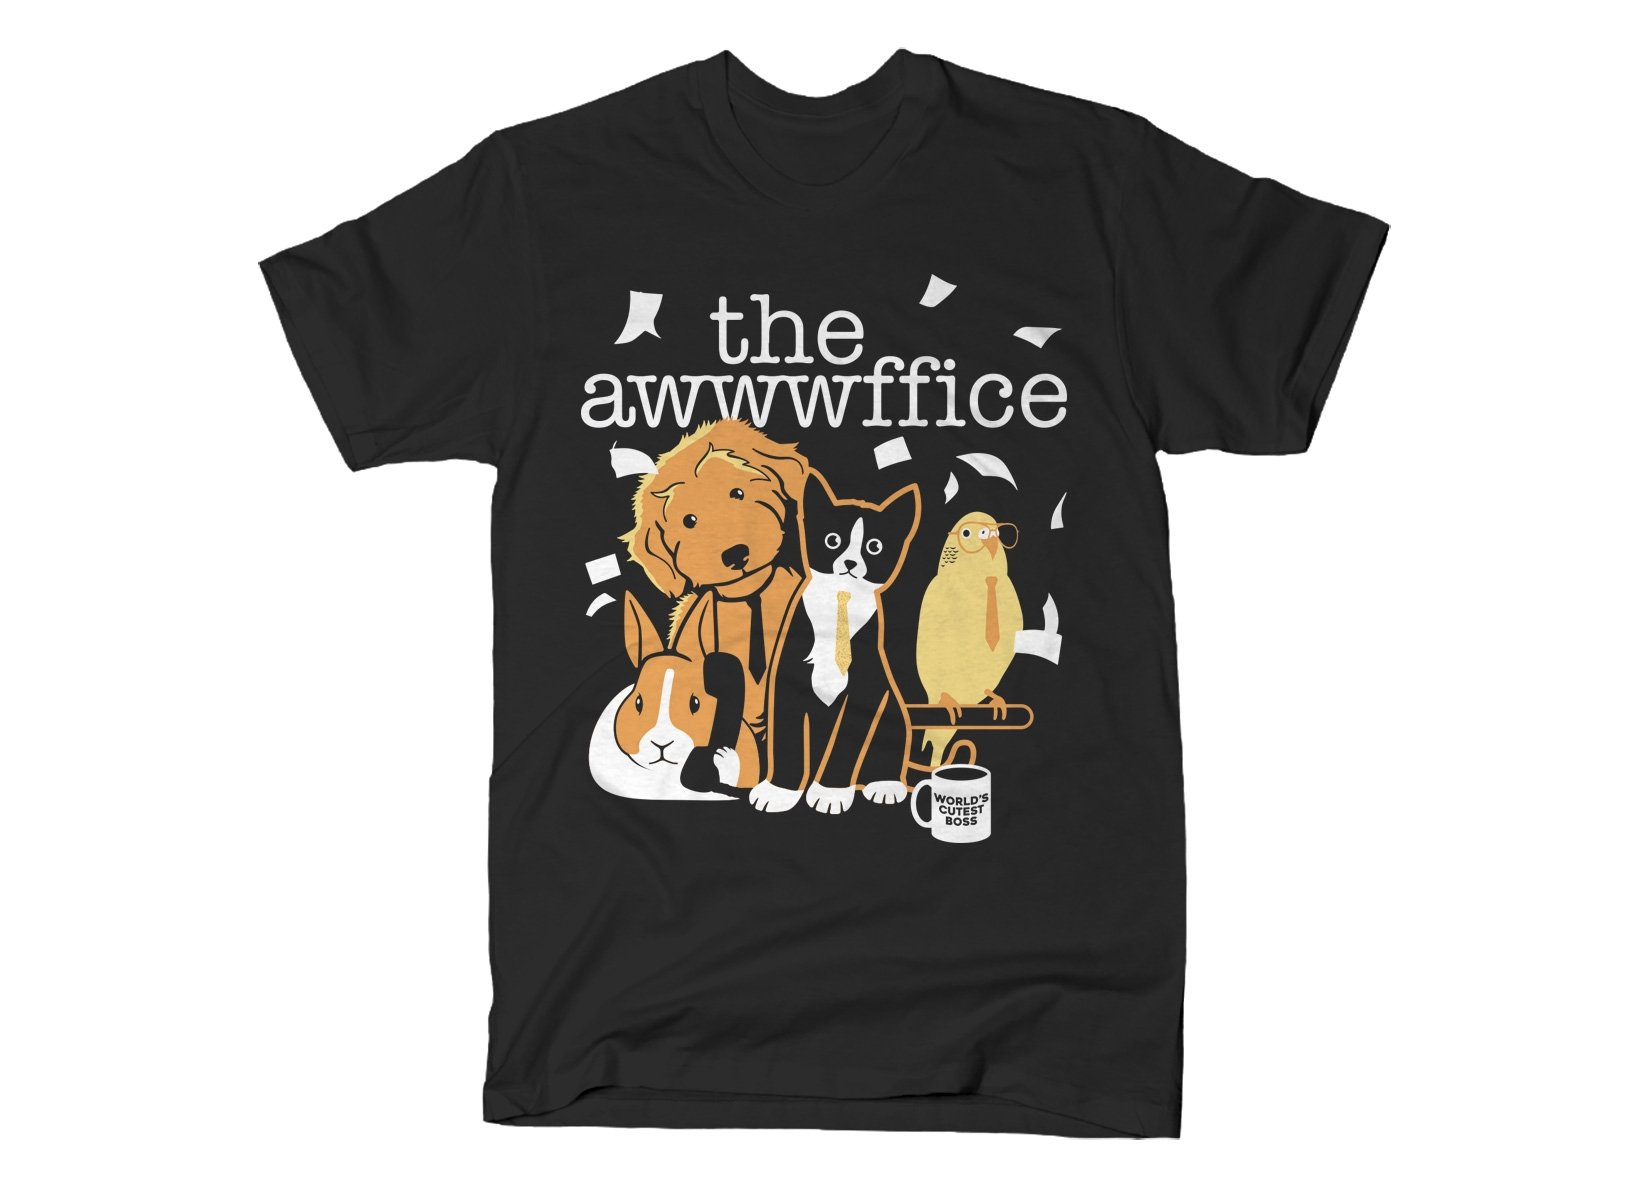 The Awwwffice on Mens T-Shirt